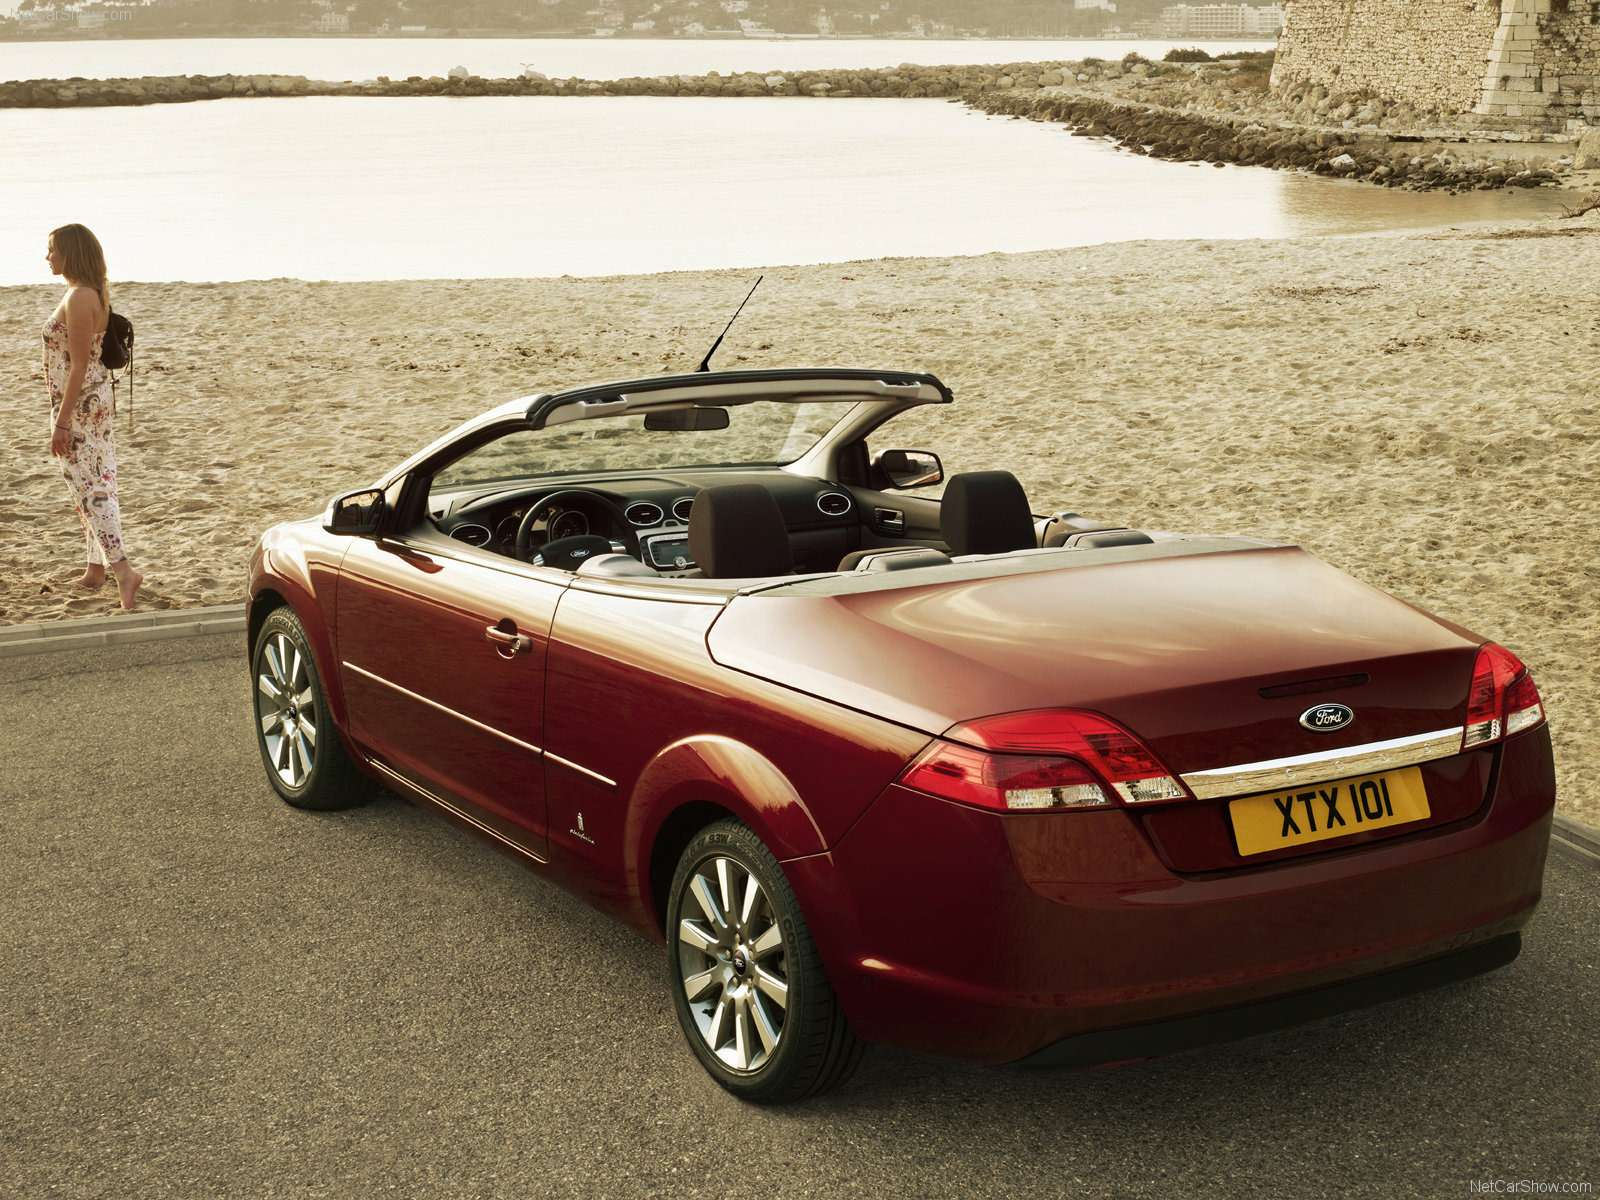 Ford-Focus_Coupe-Cabriolet_2008_1600x1200_wallpaper_05